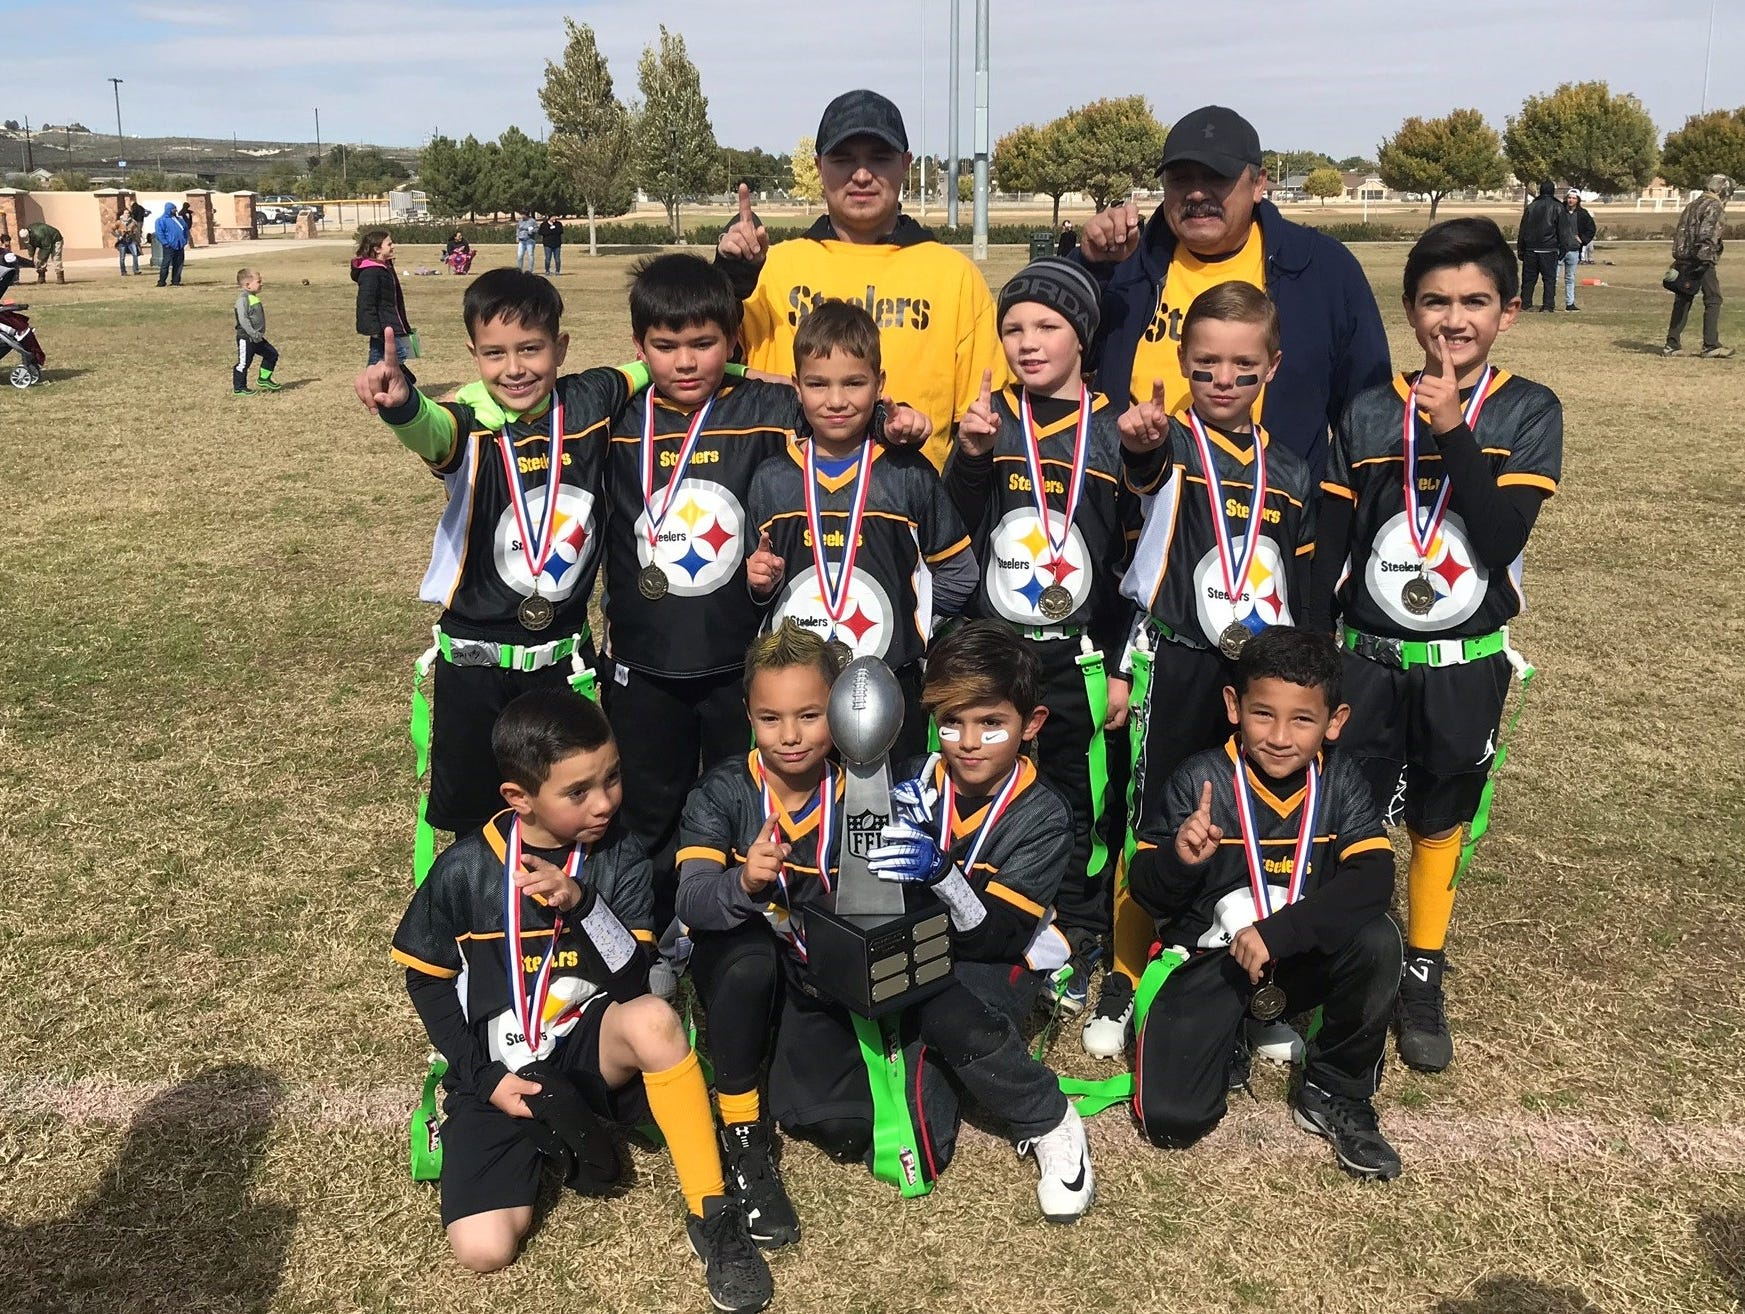 The Steelers won the 2nd-3rd grade 2018 Carlsbad NFL Flag Football Superbowl.